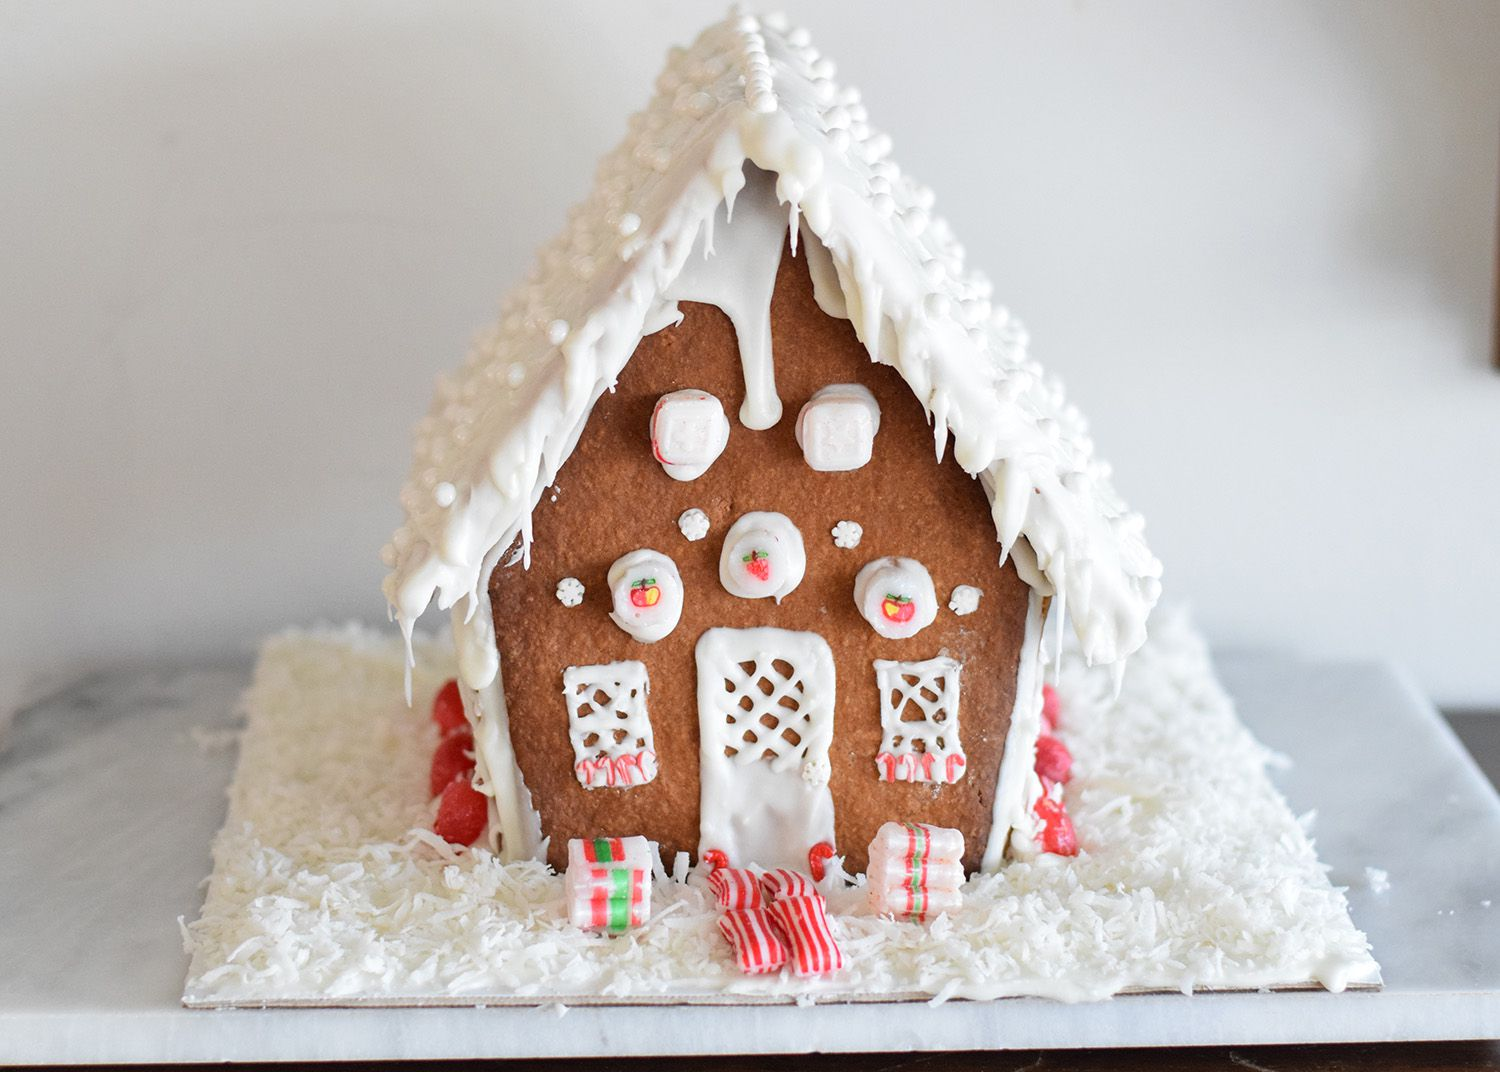 Royal Icing Recipe For A Gingerbread House